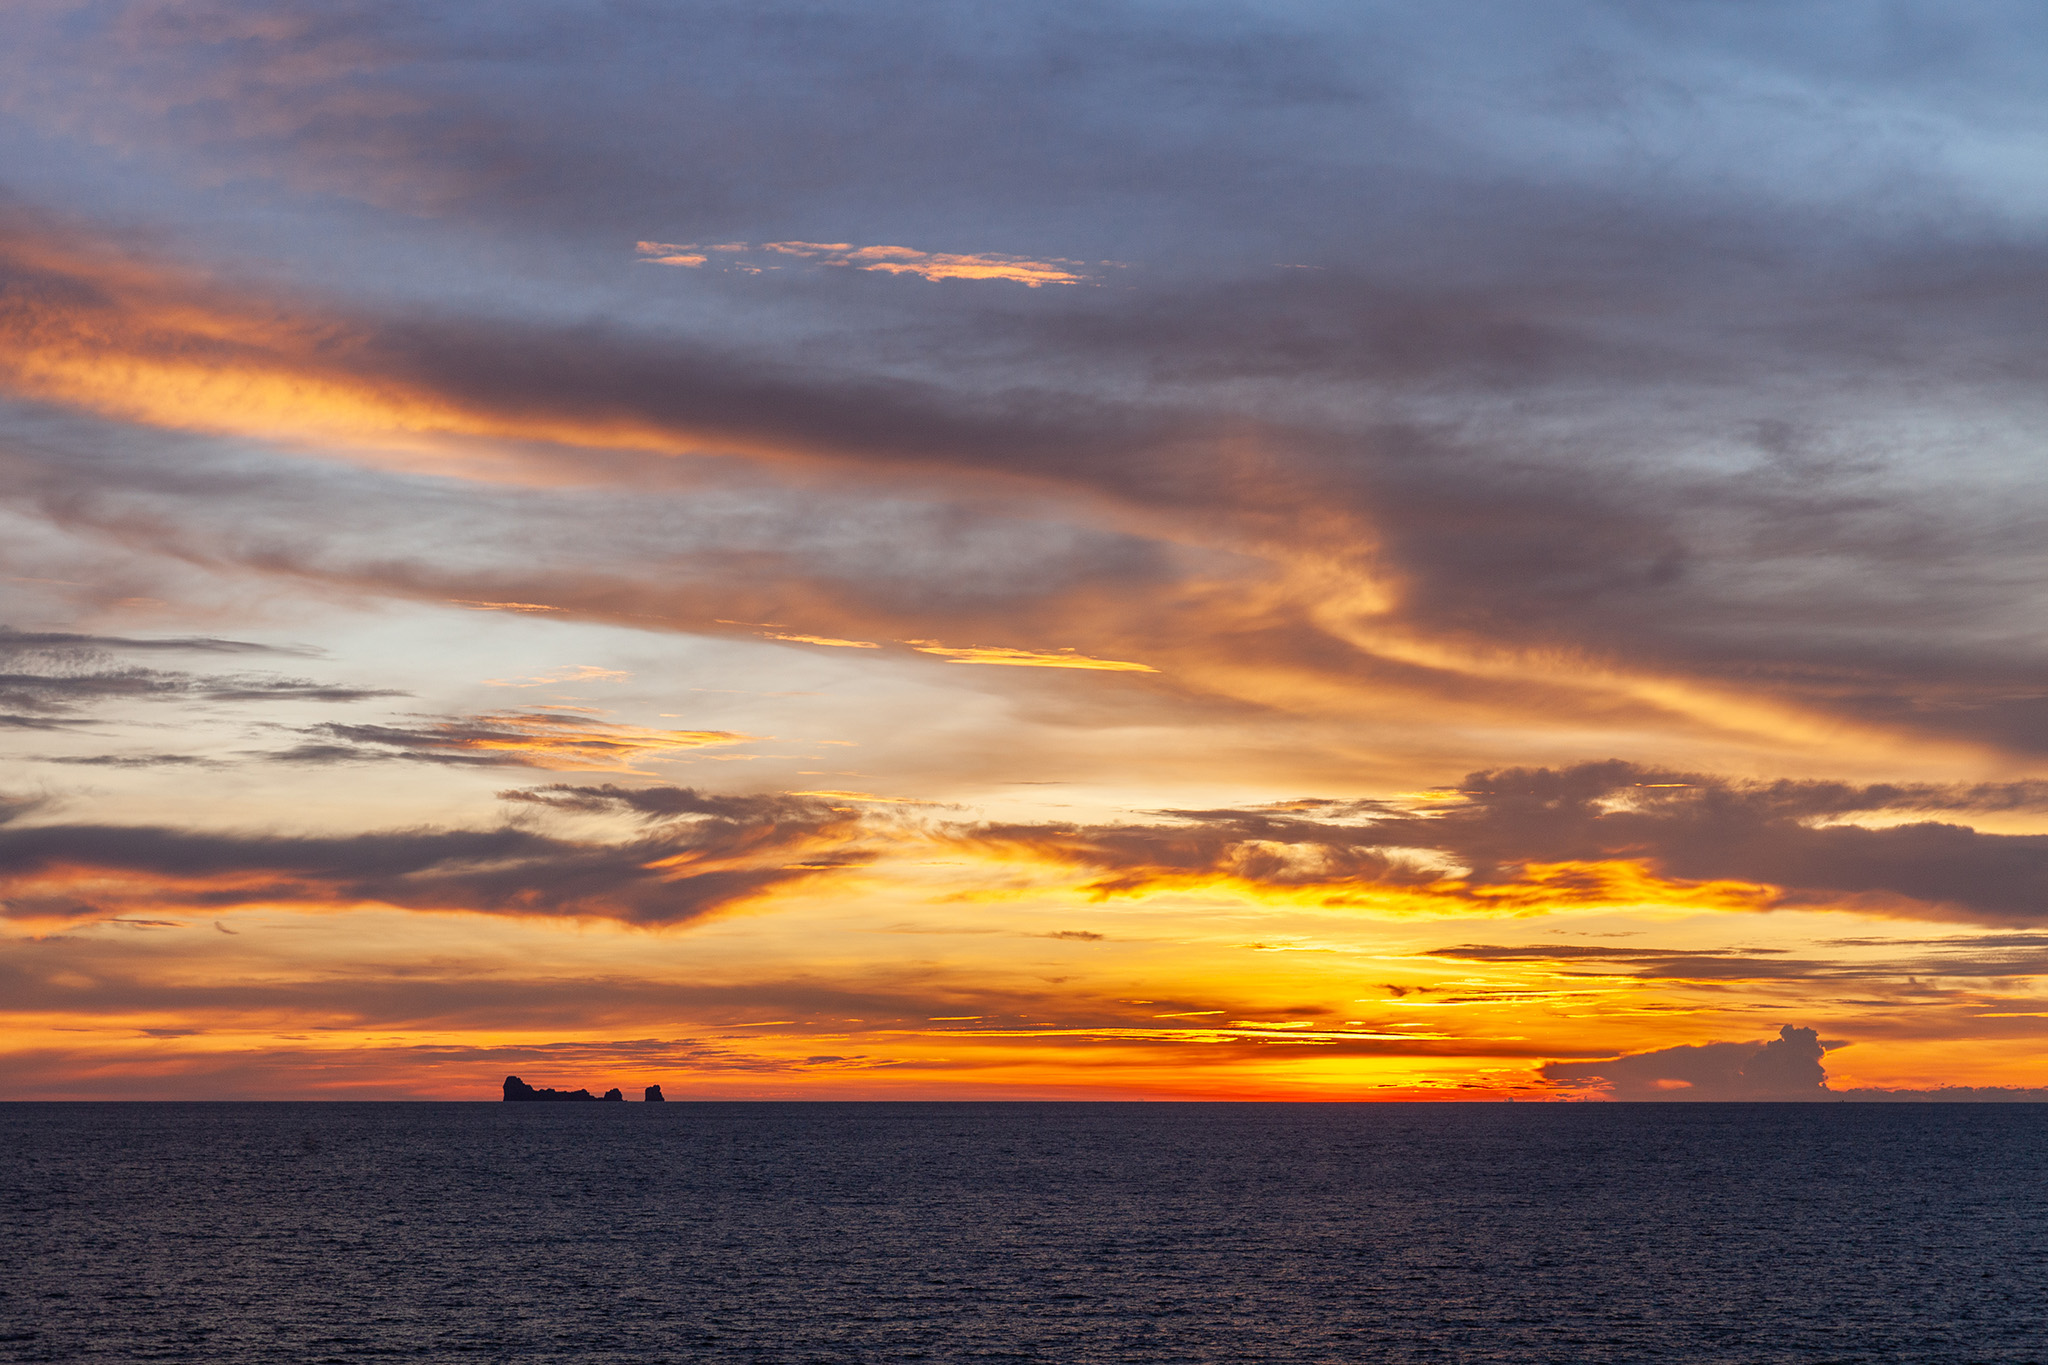 Sunset with the Phi Phi Islands on the horizon